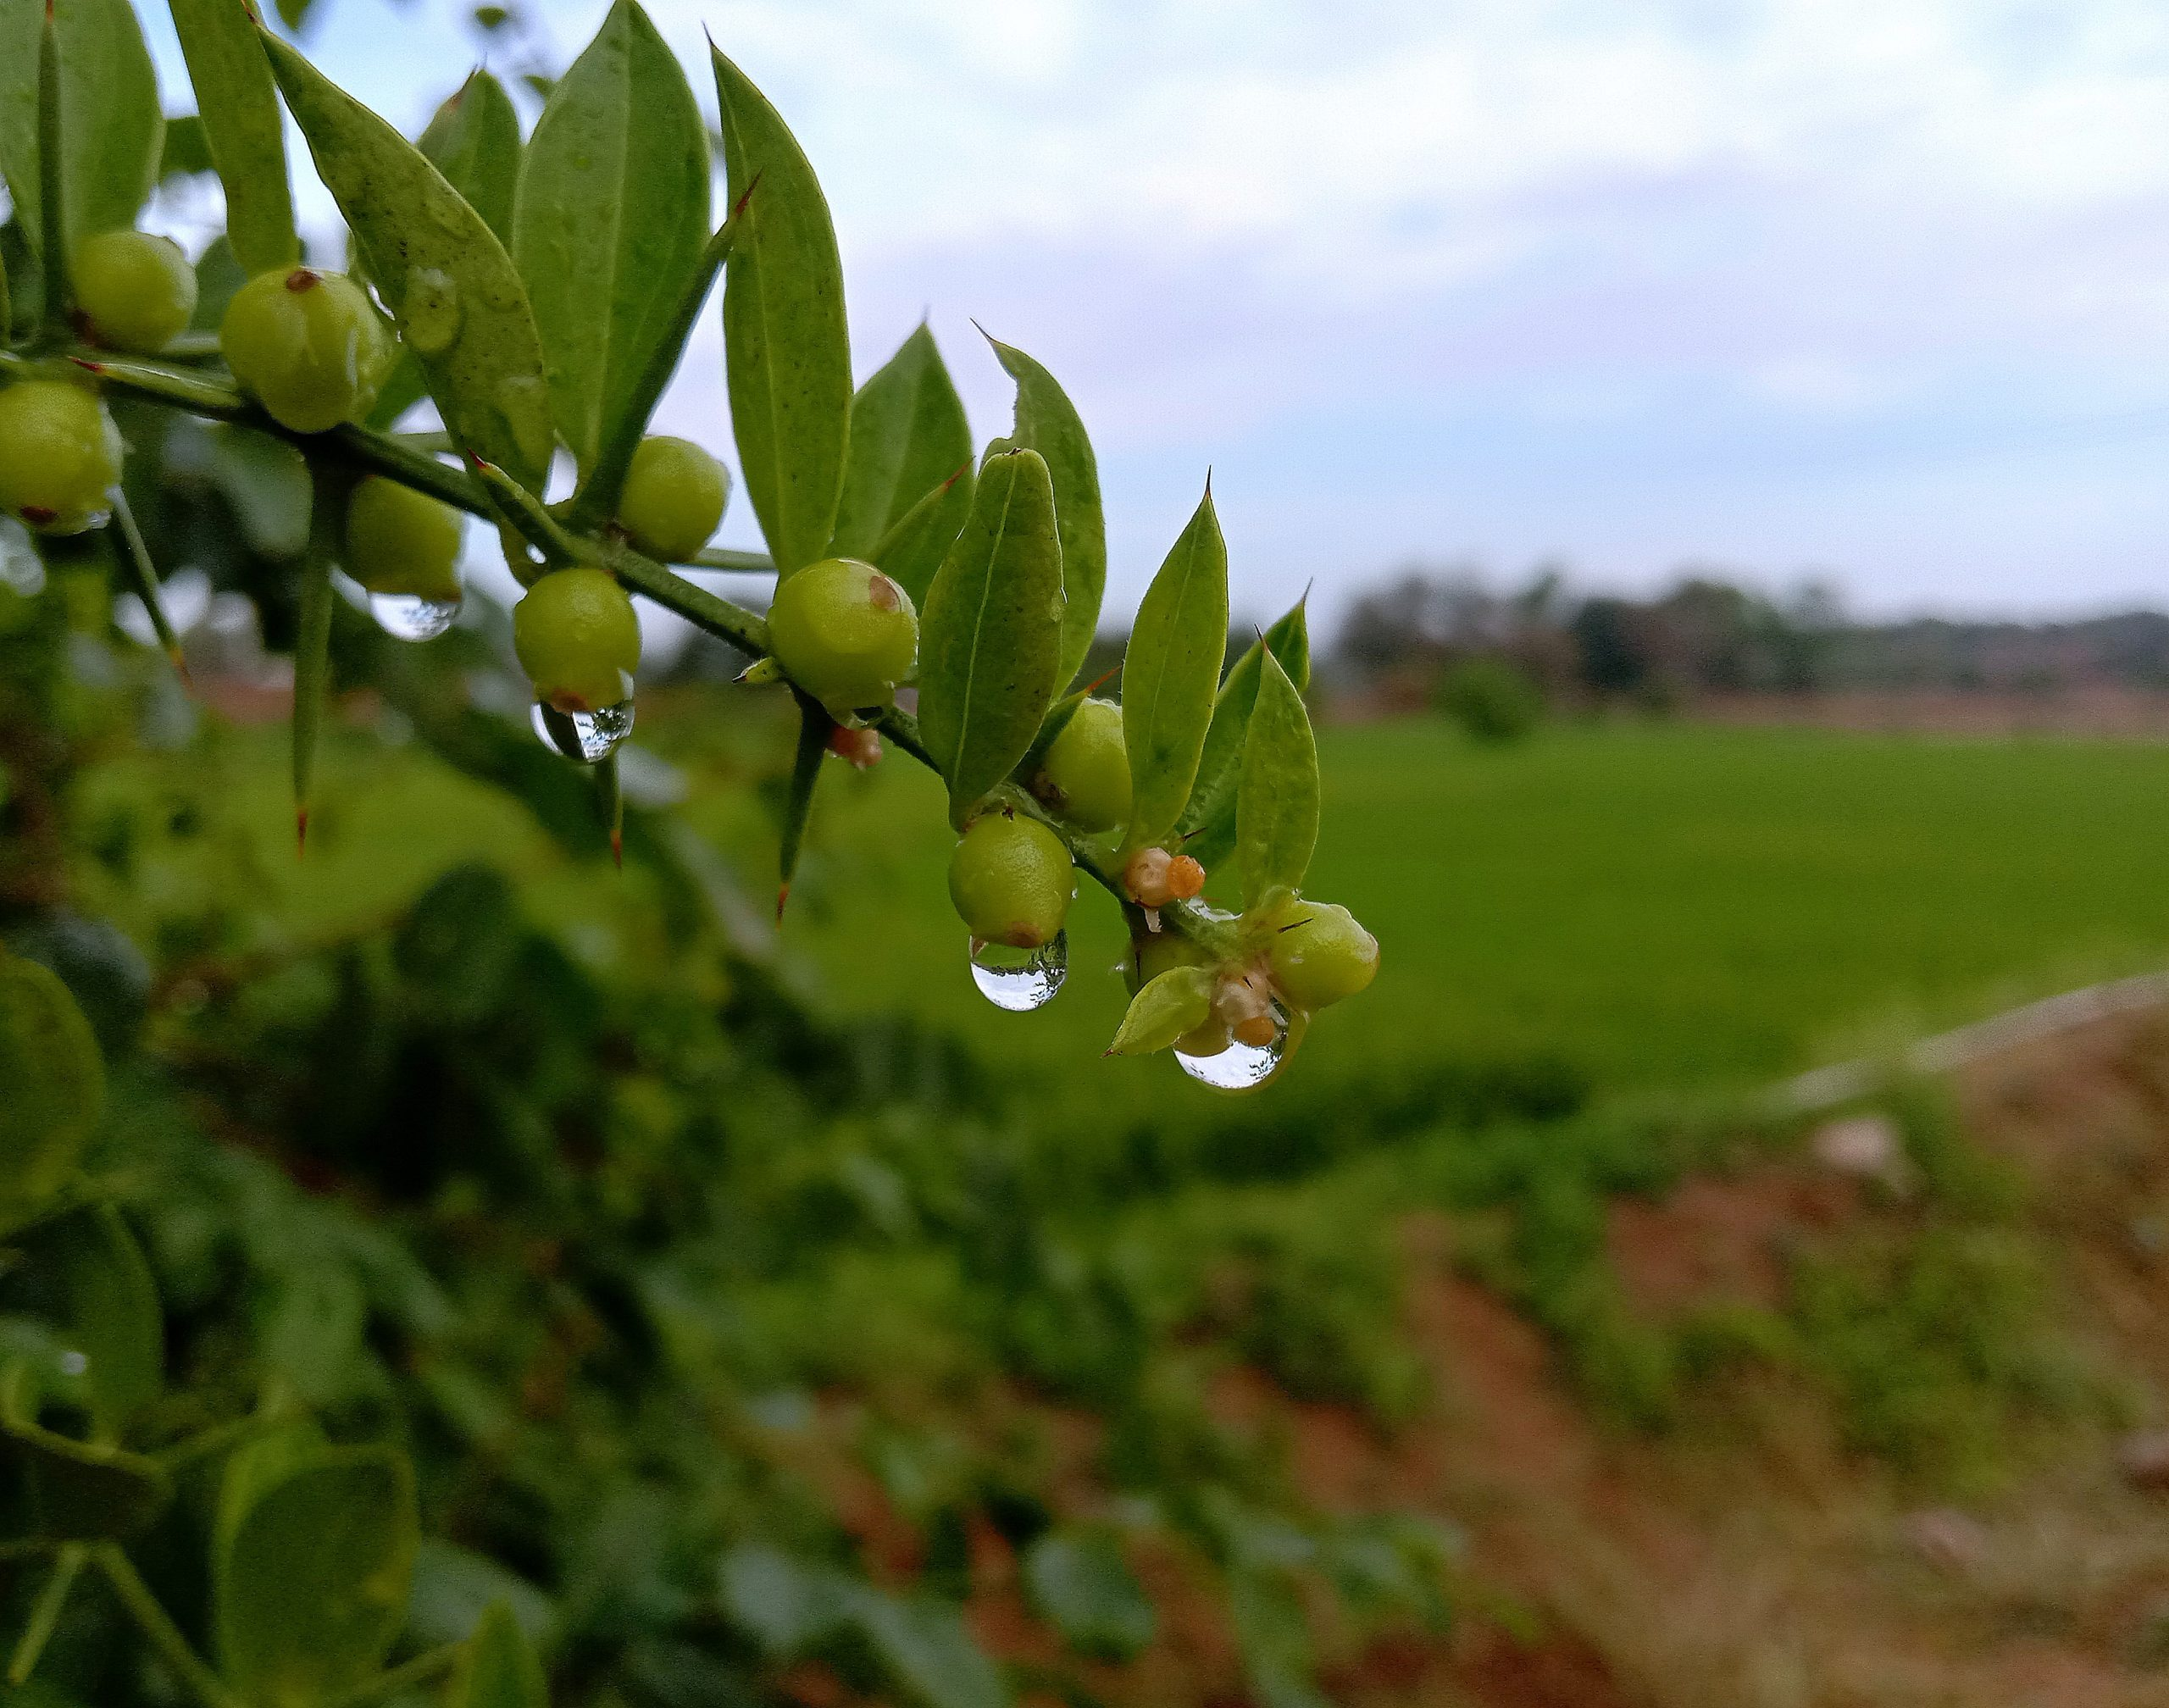 Waterdrops on plant